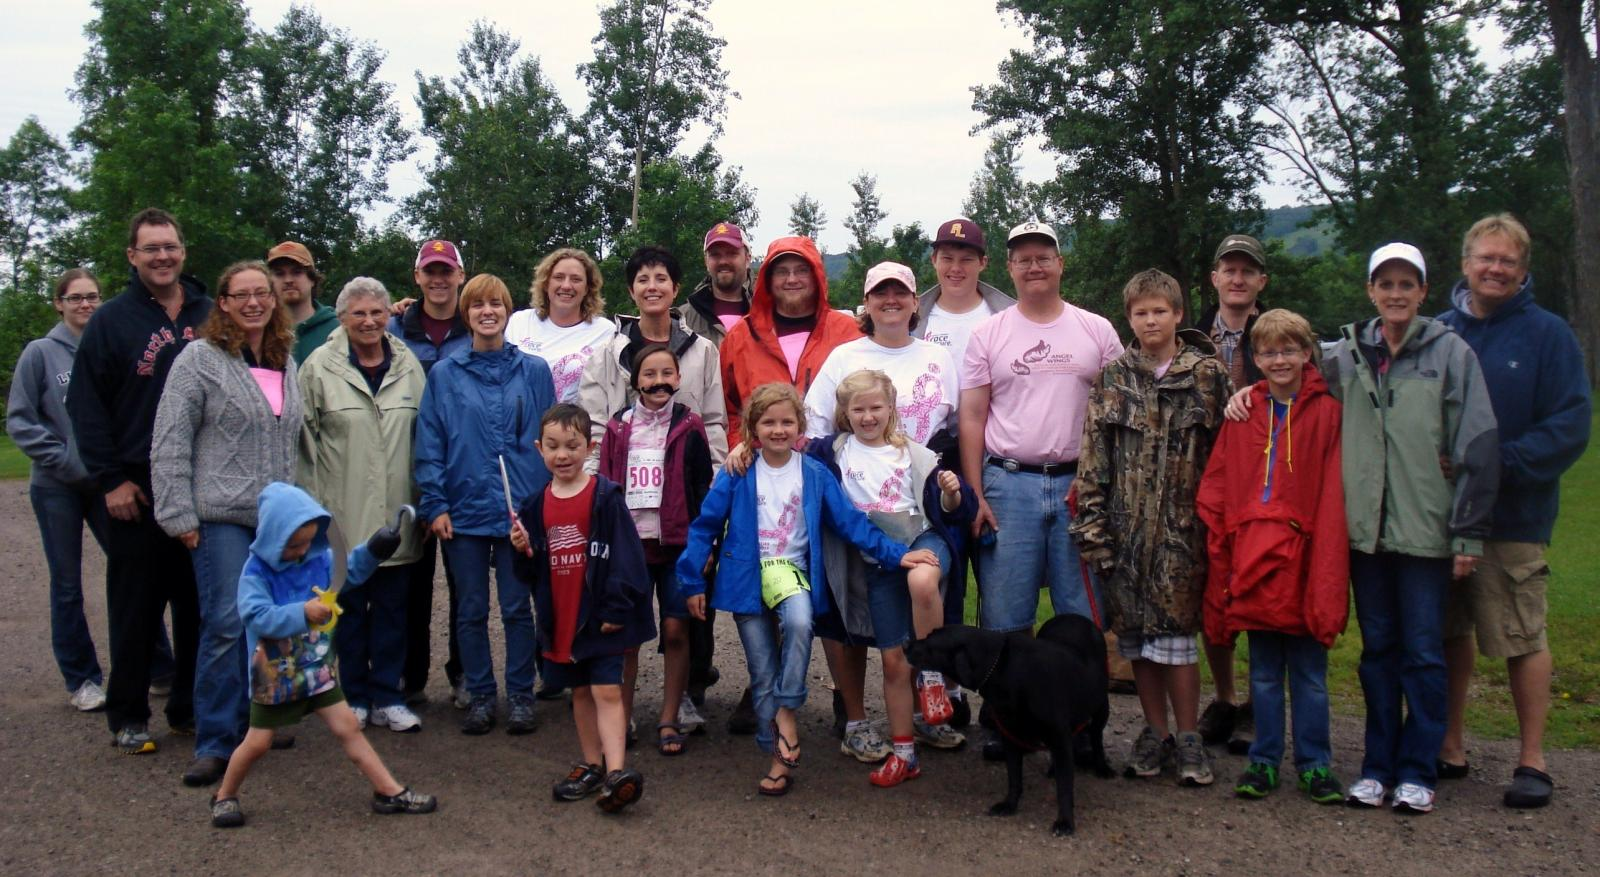 Krinke-Hawkinson Family before hitting the trail for their own version of Susan G. Komen 5K Walk.